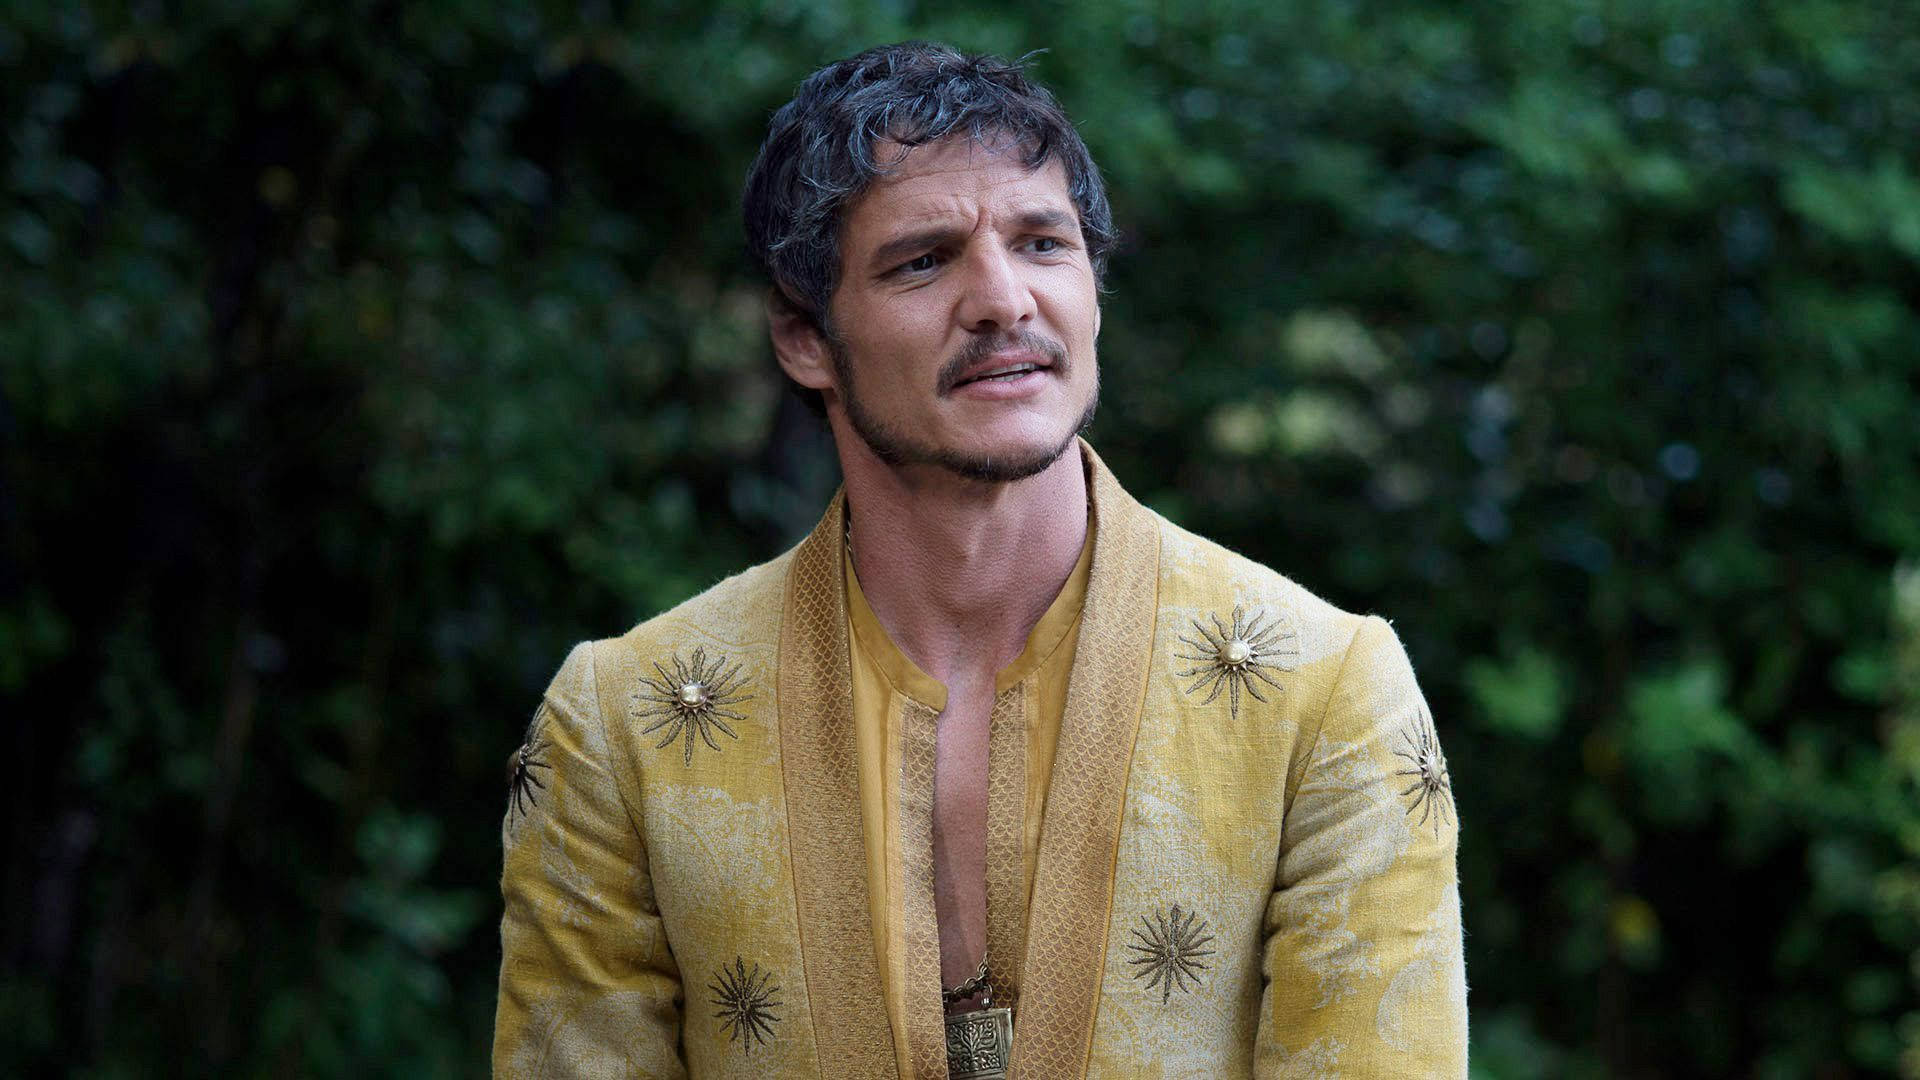 Oberin Martell - actor Pedro Pascal: two stories from different worlds